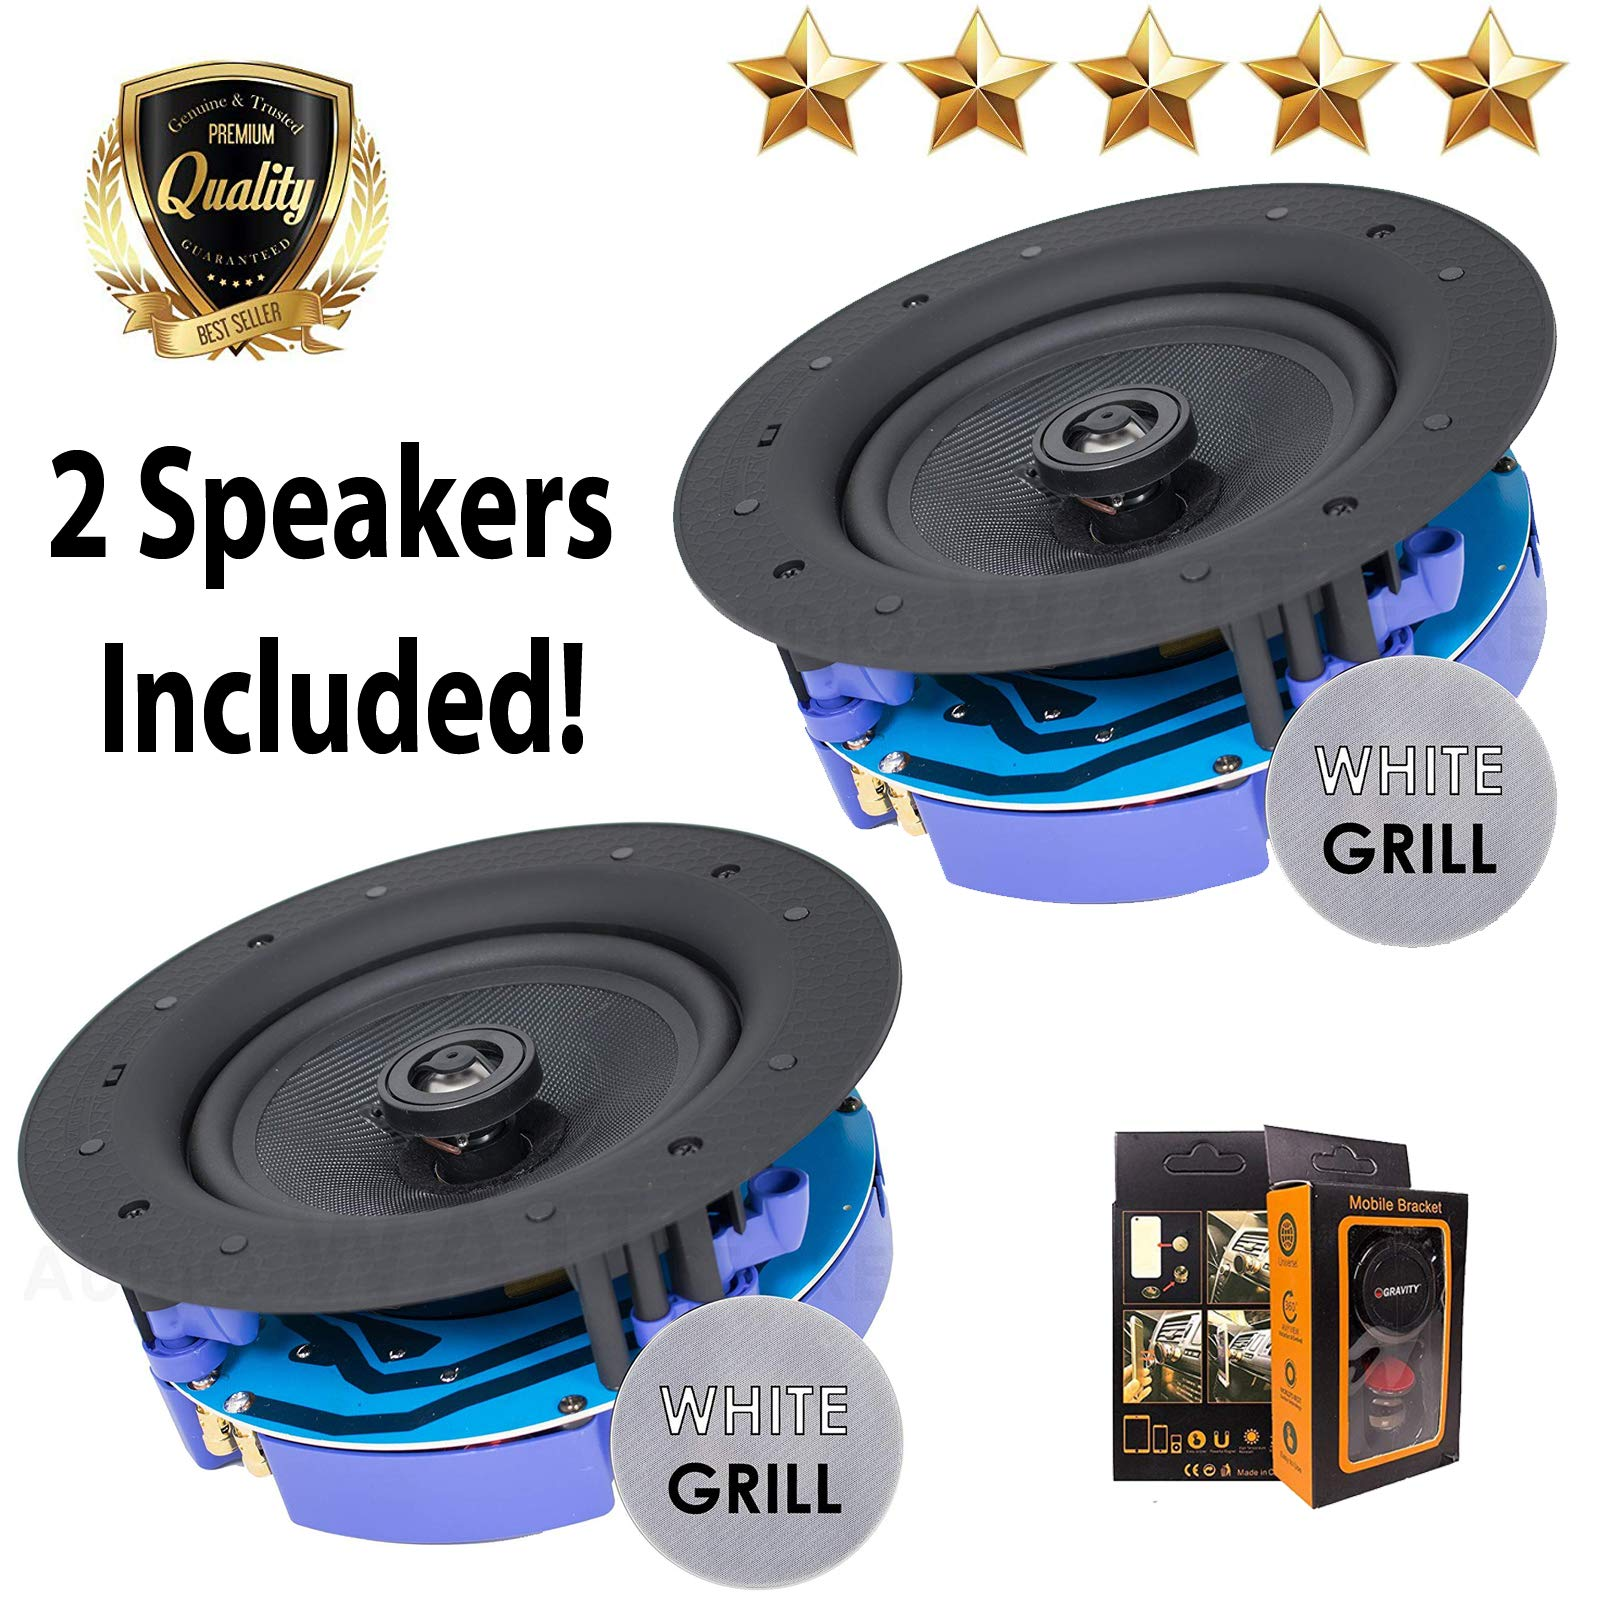 "Package: Gravity Premium SG-6Hi 6.5"" 400 Watts Flush Mount In-wall In-ceiling 2-Way Universal Home Speaker System with PP Cone Titanium Tweeter Stereo Sound (2 Speakers Included)"